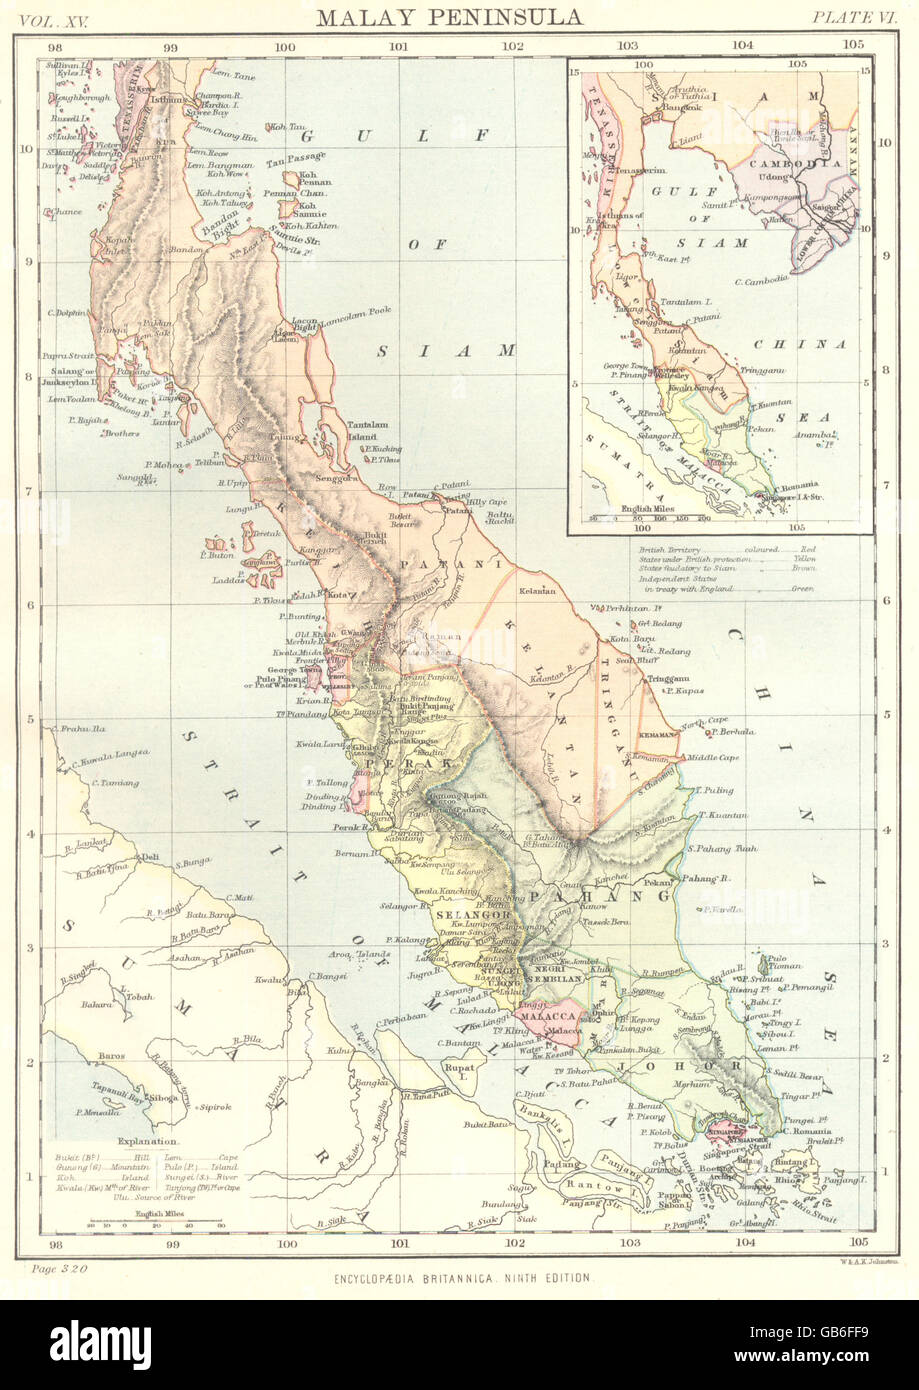 MALAY PENINSULA: Malaysia. States. Singapore; Inset Gulf of ... on sumatra map, indus river map, malay archipelago, india map, sabah map, strait of malacca, cuba map, arabian peninsula, philippines map, malaysia map, east indies, indonesia map, singapore map, gobi desert on map, east timor map, japan map, peninsular malaysia, persian gulf map, cambodia map, malay language, malay people, laos map, kra isthmus, great sandy desert map, borneo map, cape of good hope map, java on map, maldives map,